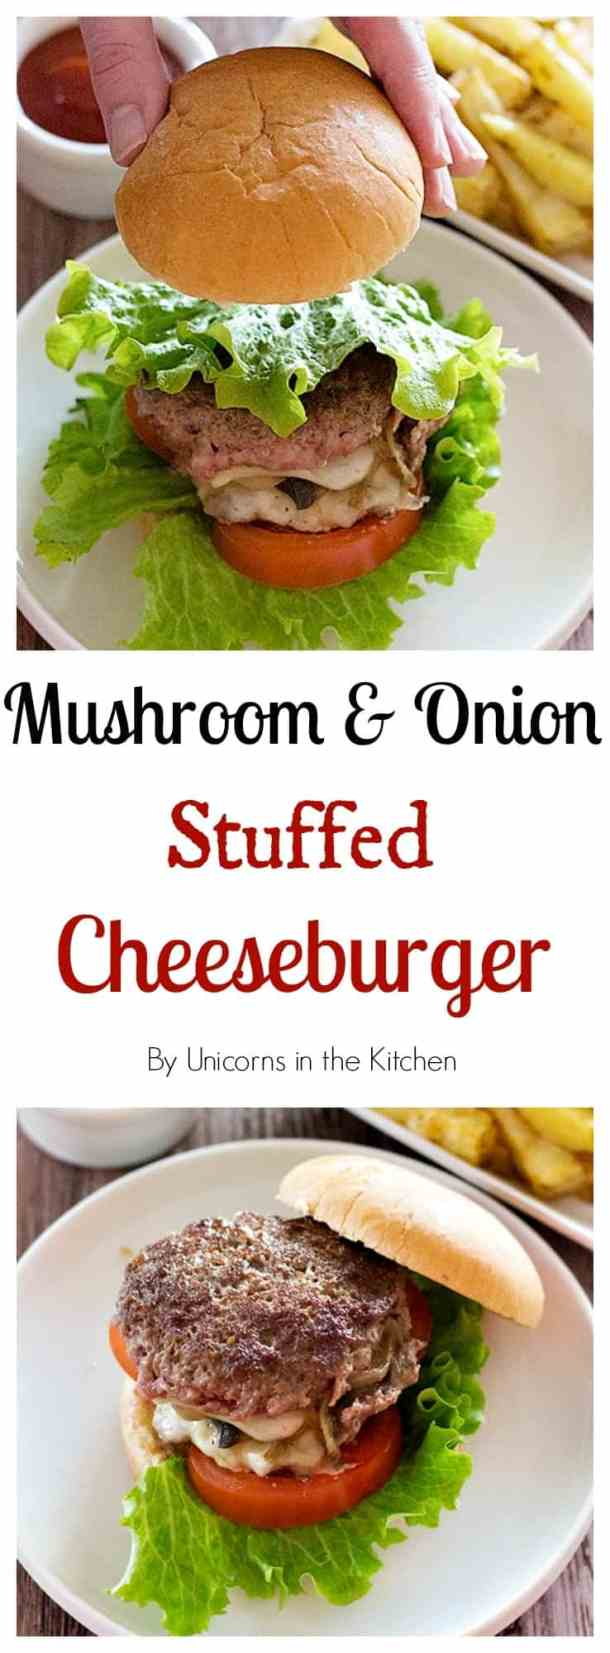 Why have this all time favorite meal outside when you can make it super delicious at home? You can't have just one bite of this scrumptious juicy mushroom and onion stuffed cheeseburger!